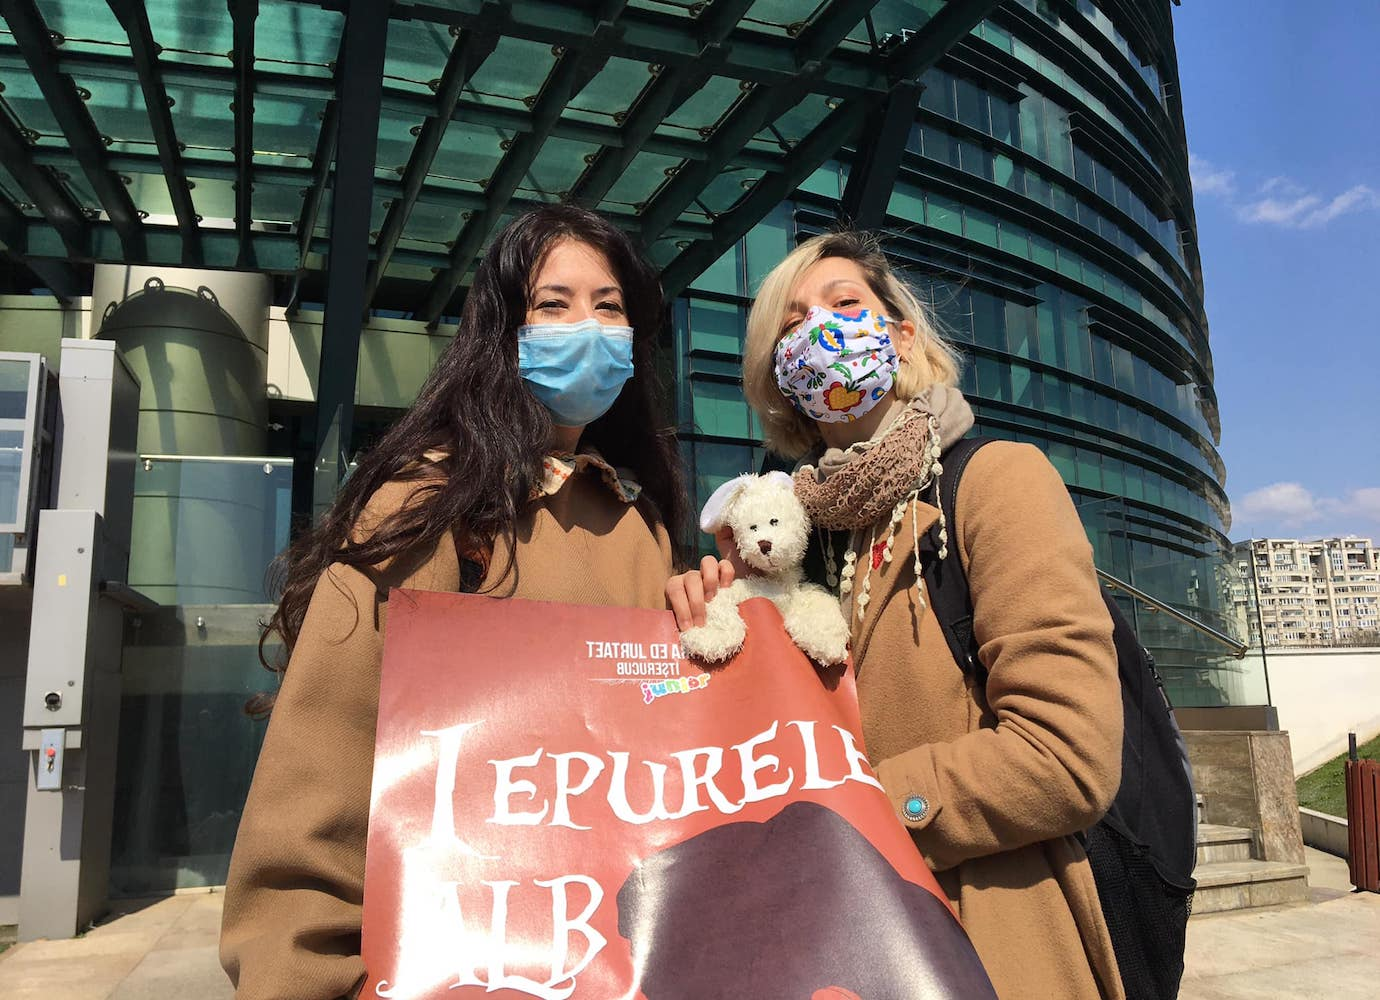 Romanian independent artists protest lack of government support as pandemic restrictions threaten their survival